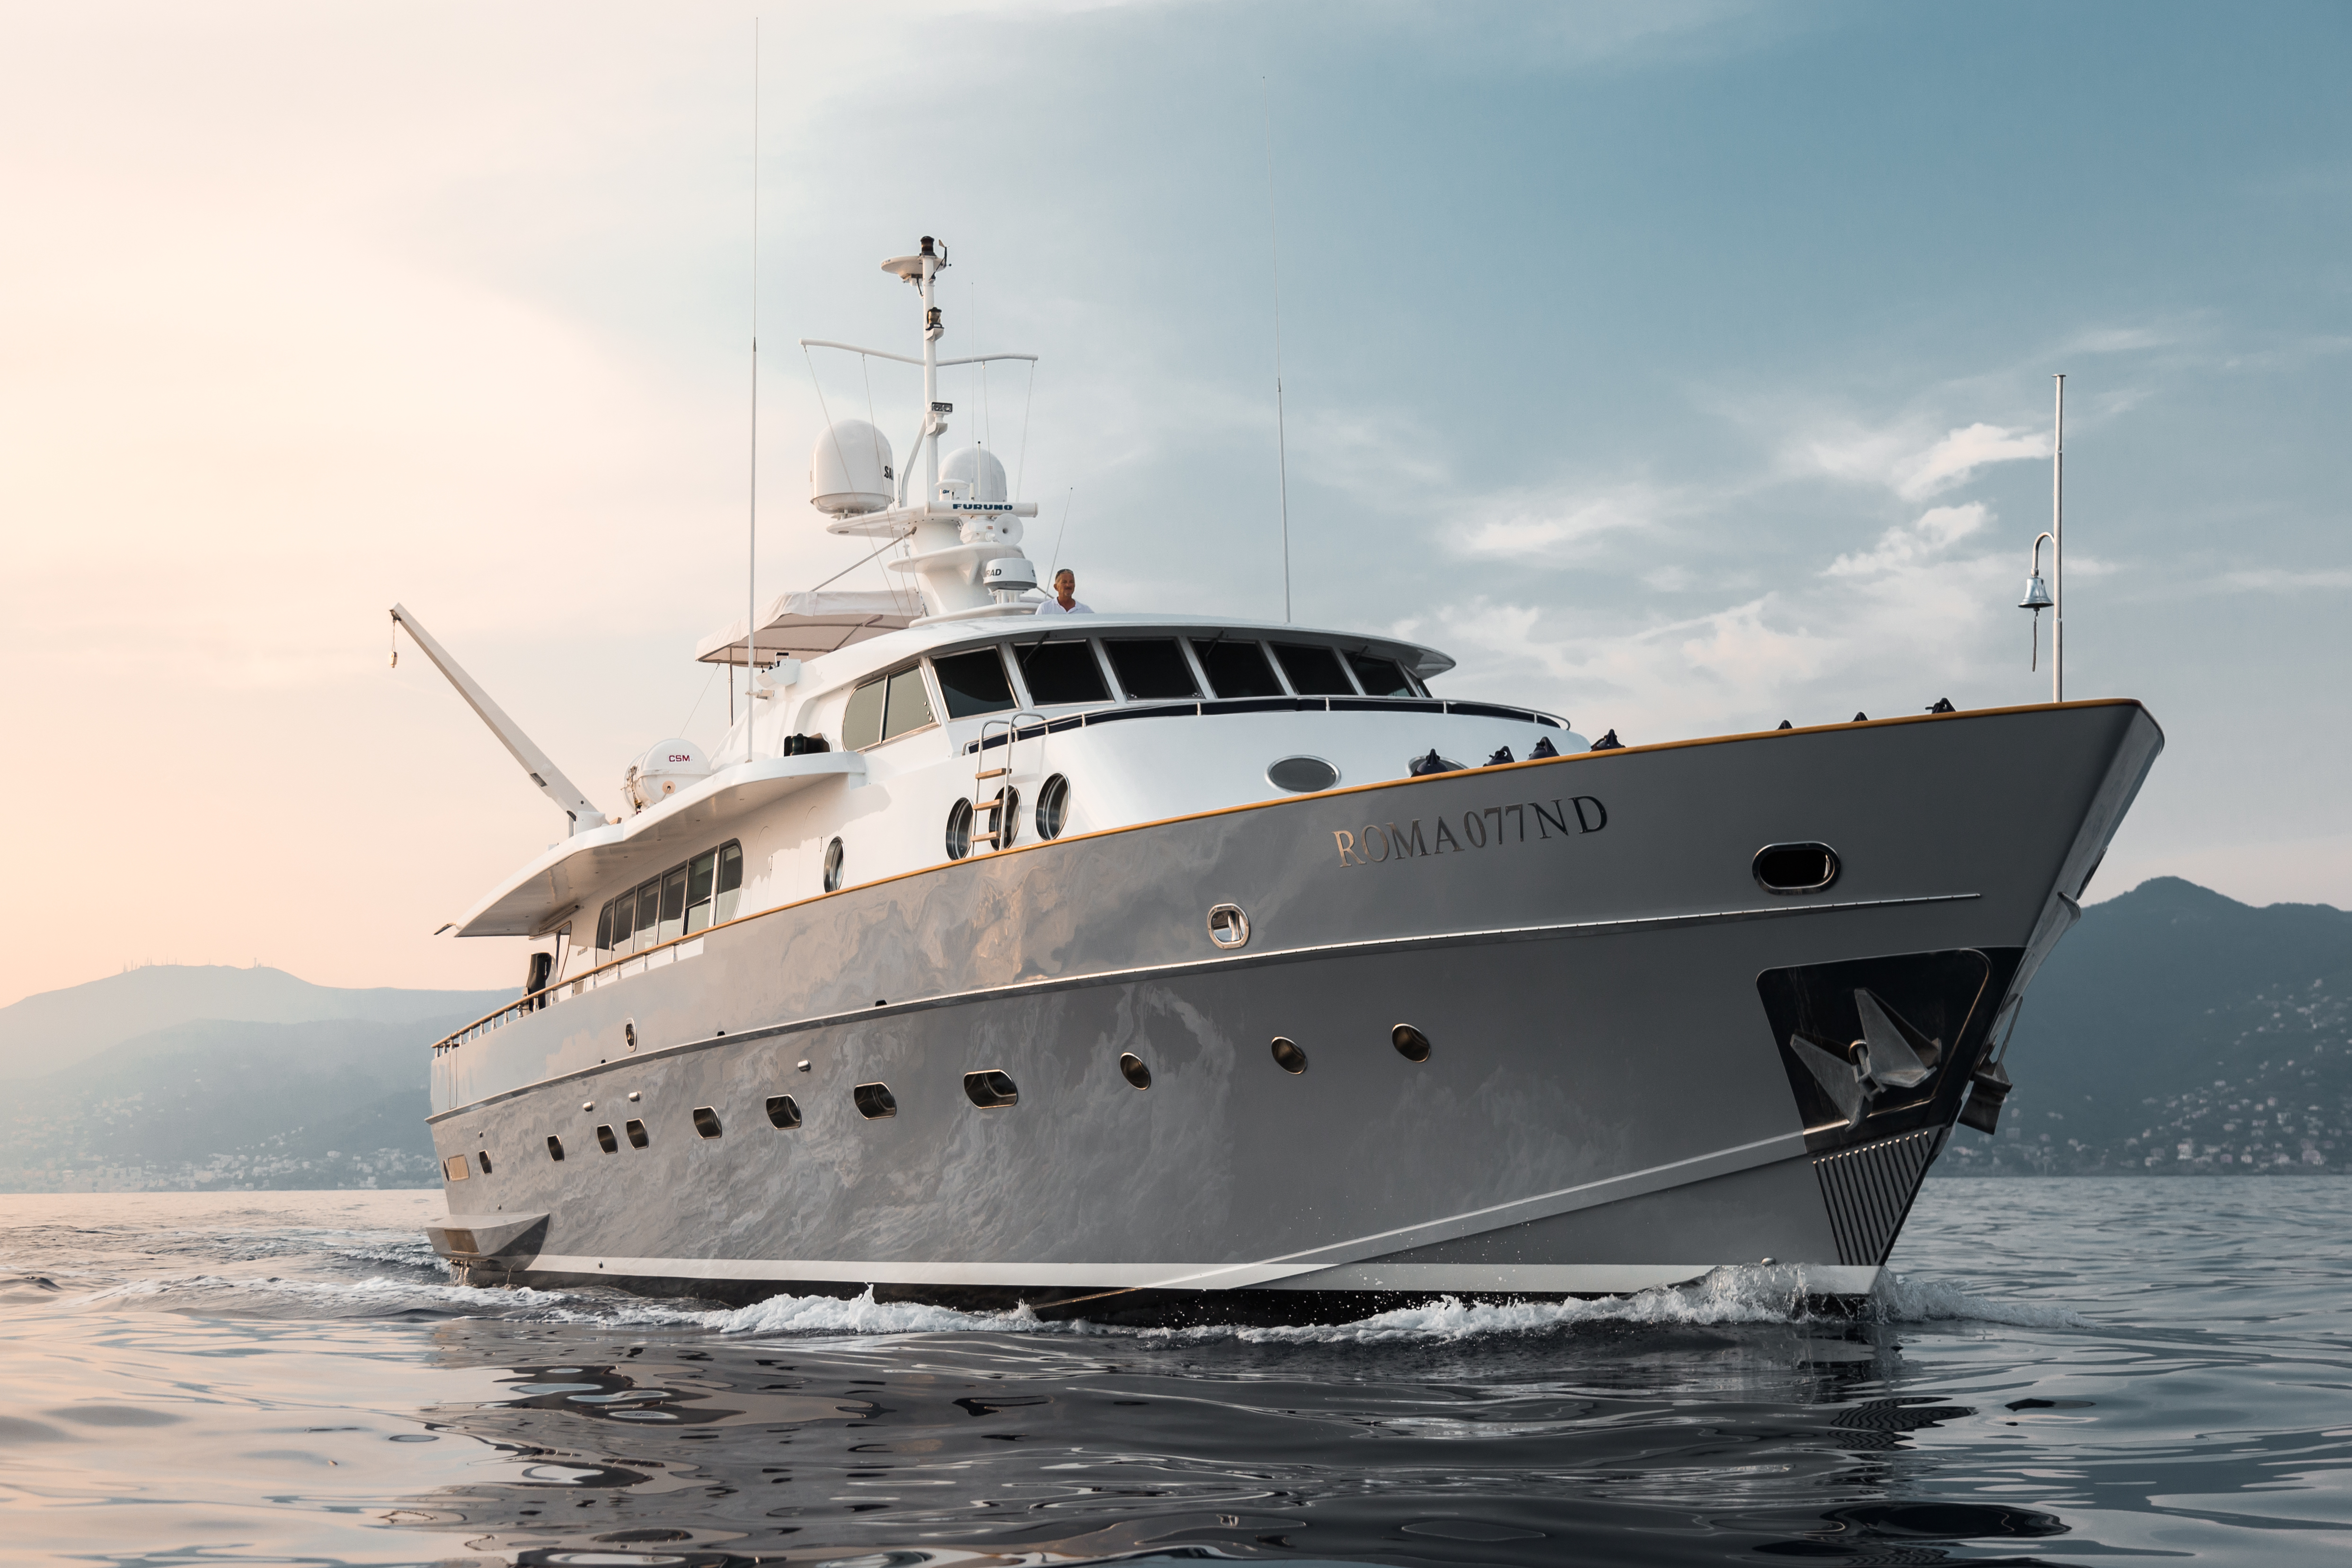 M/Y PAOLUCCI yacht for charter anchored